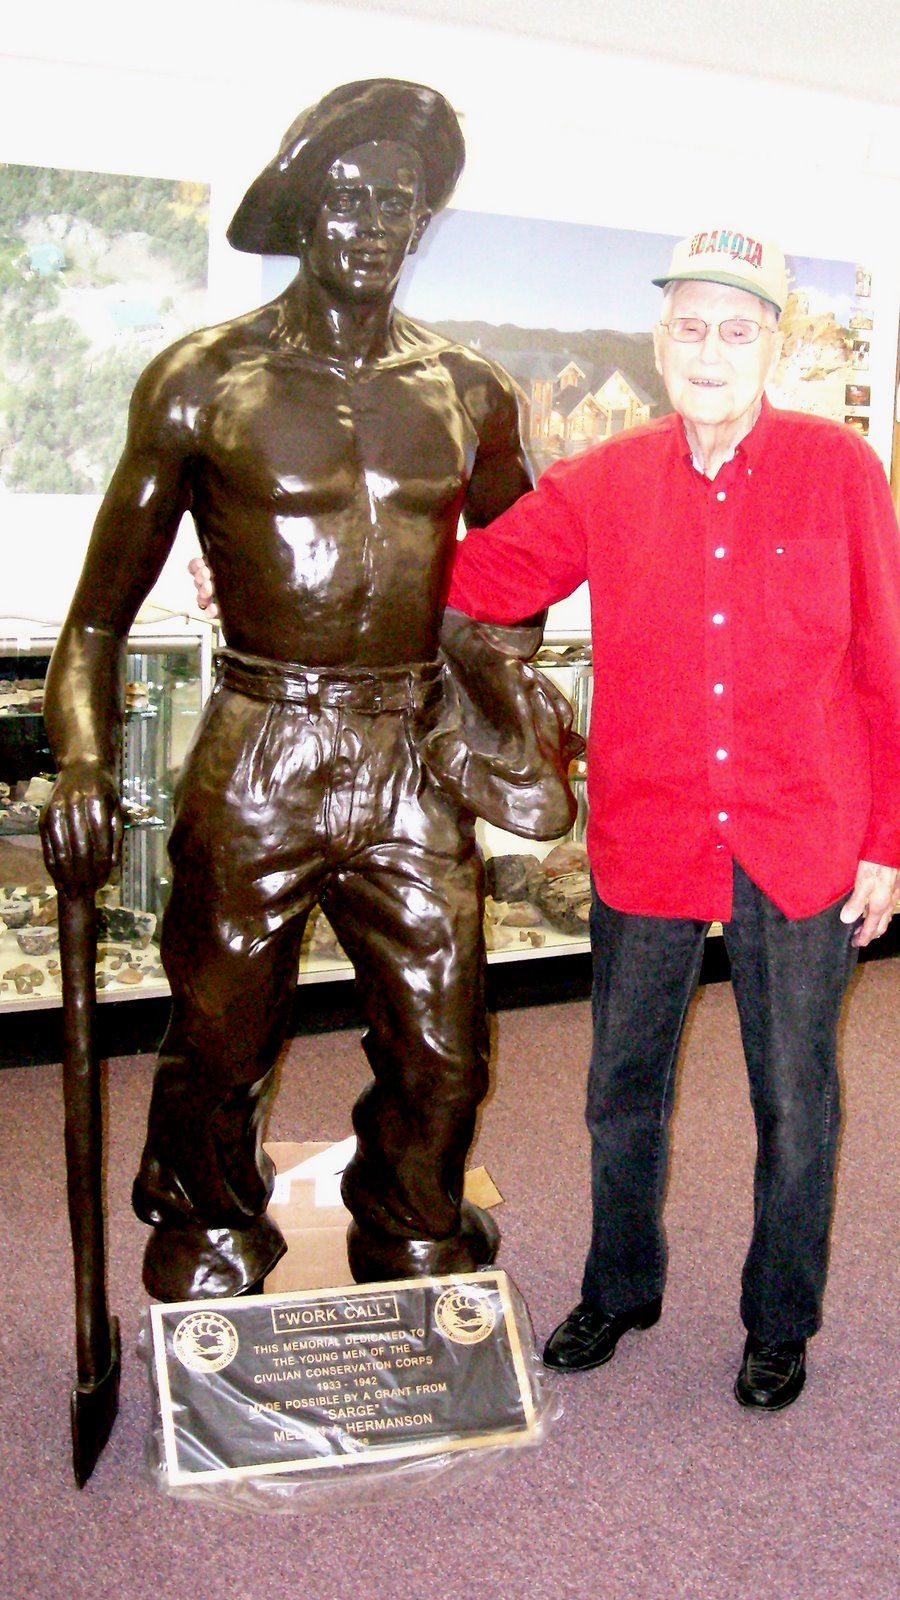 [Mel+and+statue,+1.jpg]